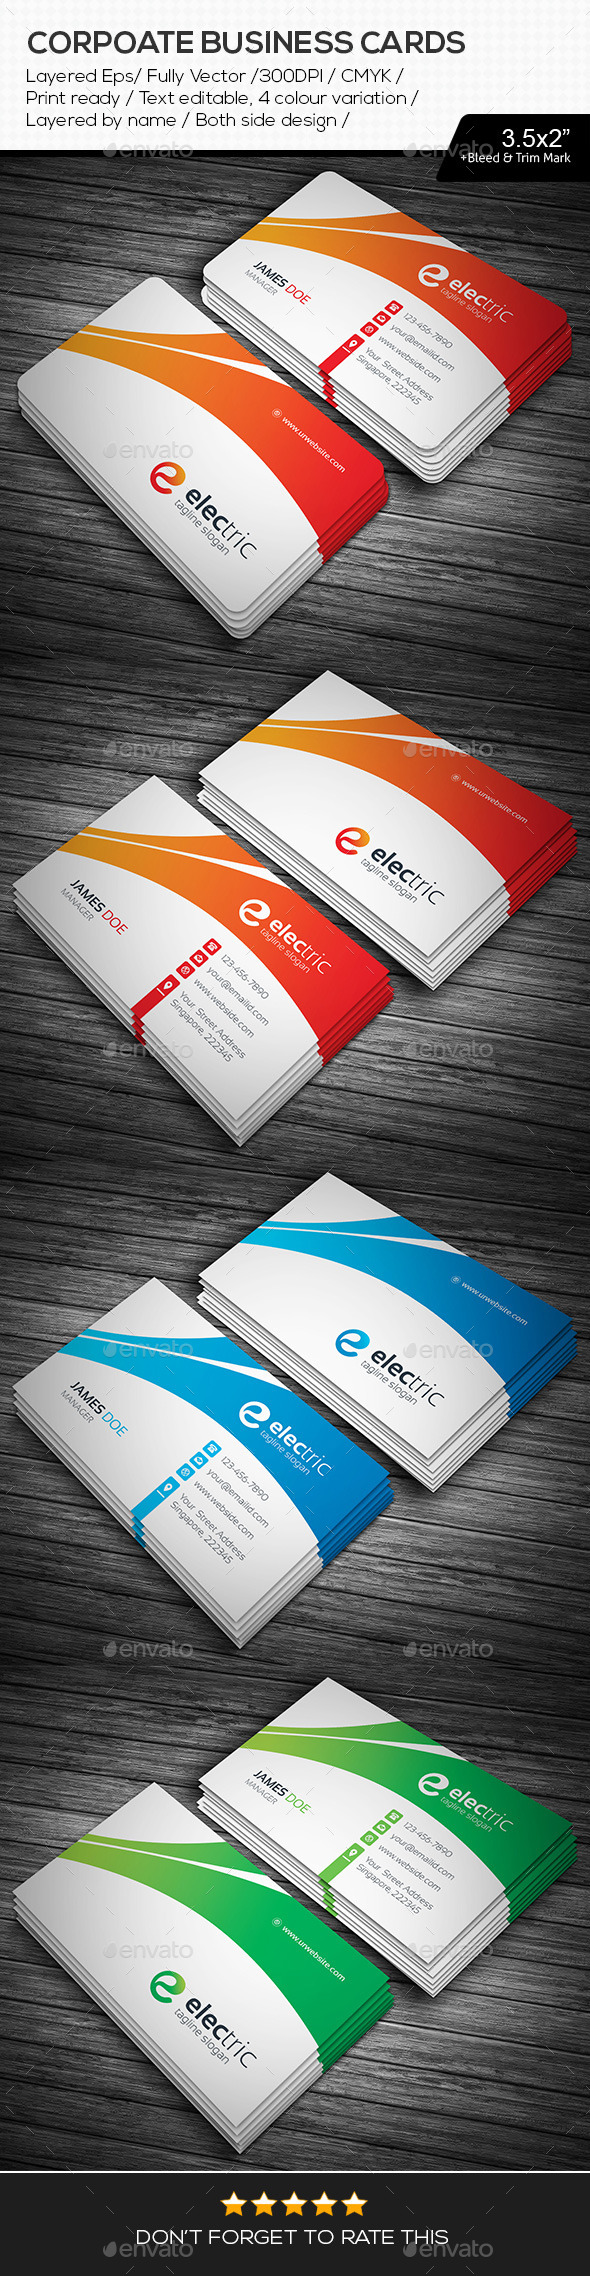 GraphicRiver Electric Corporate Business Cards 11289147